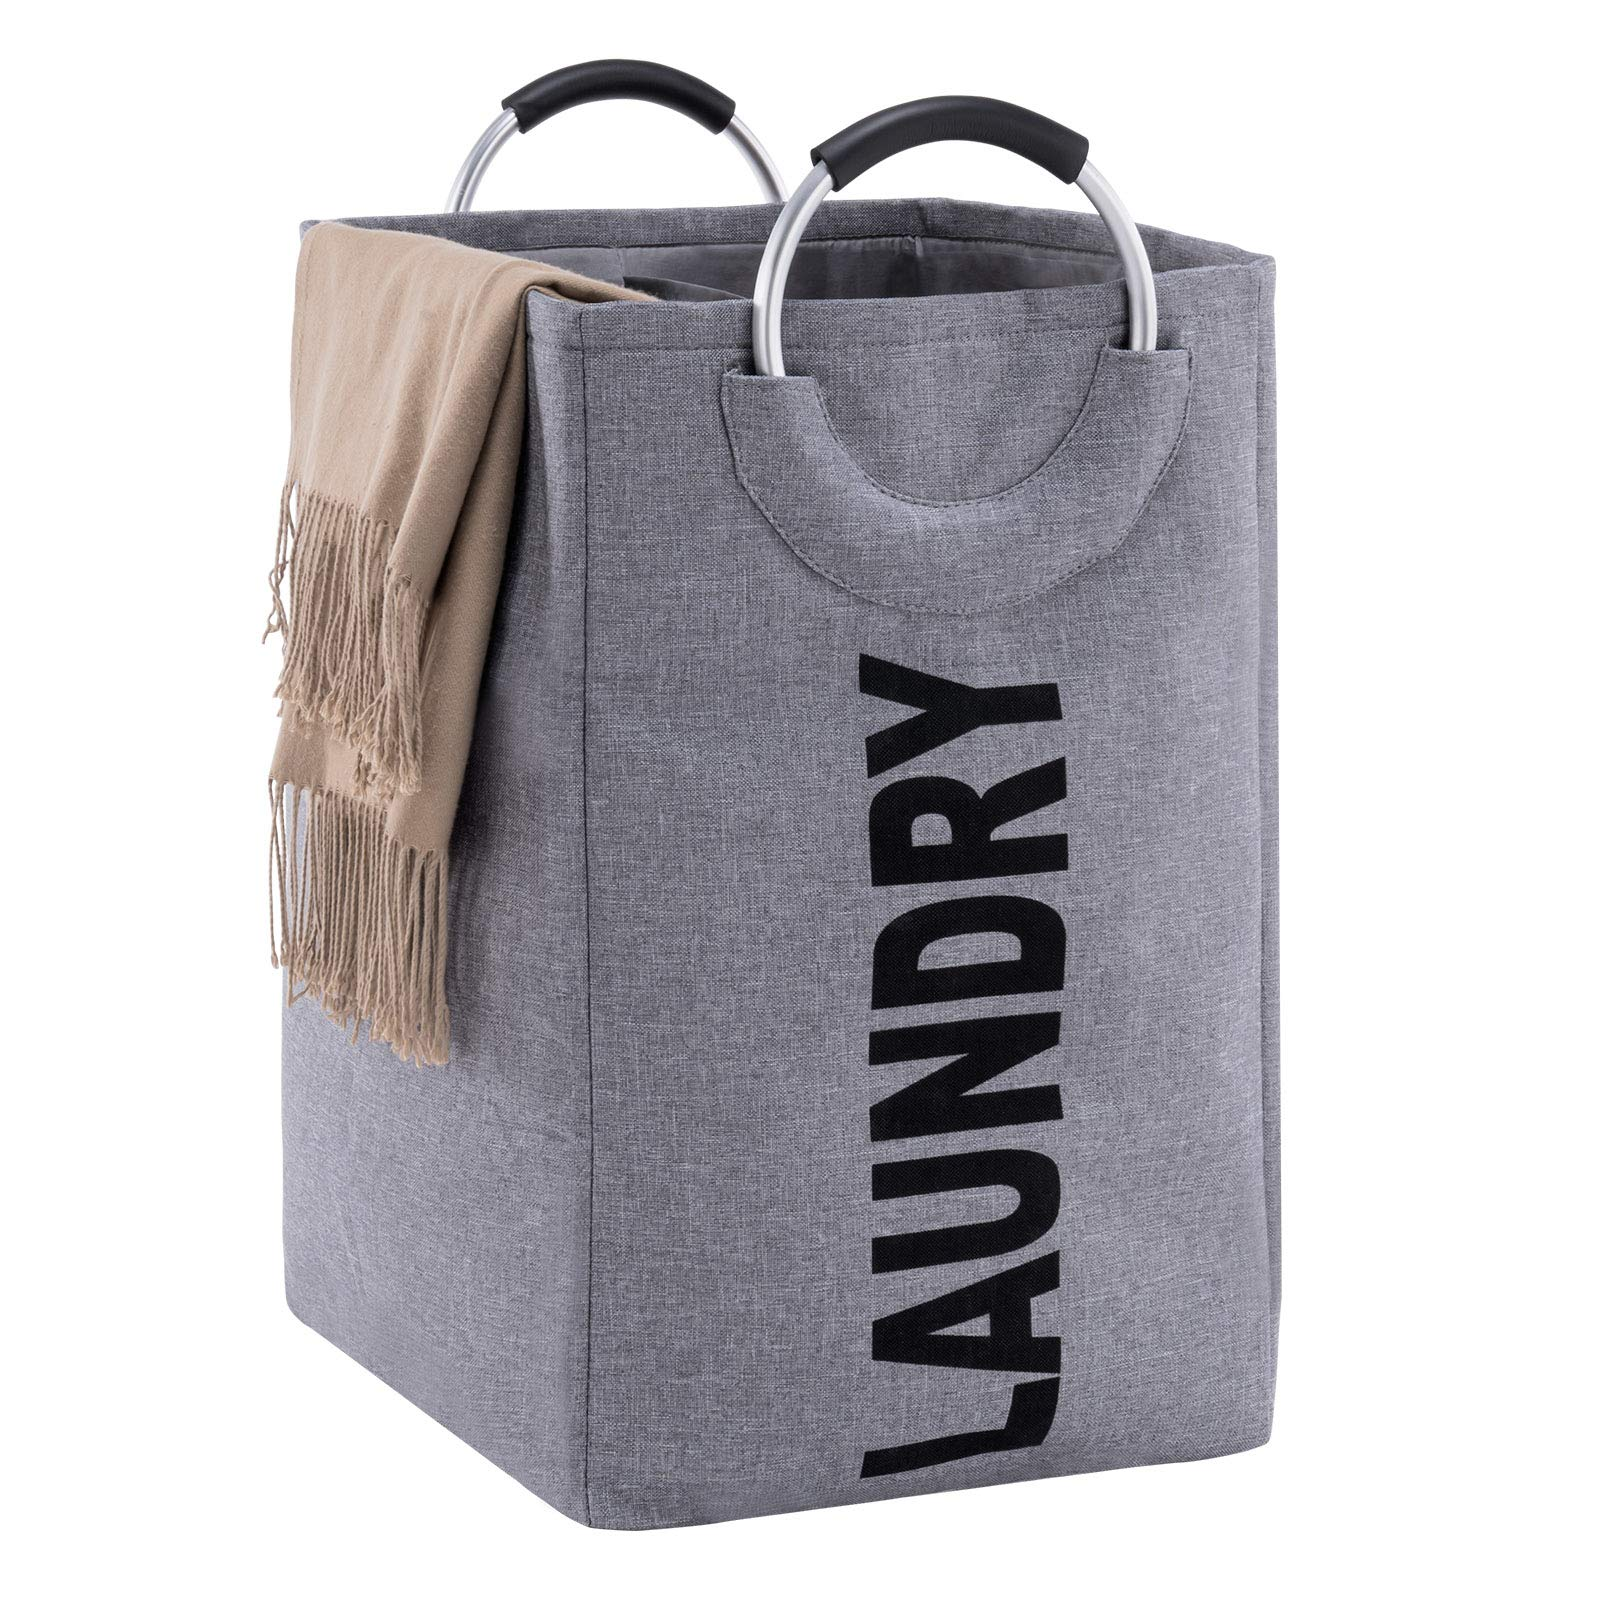 YOUDENOVA Double Laundry Hamper with Handle Large Collapsible Dirty Clothes Basket for